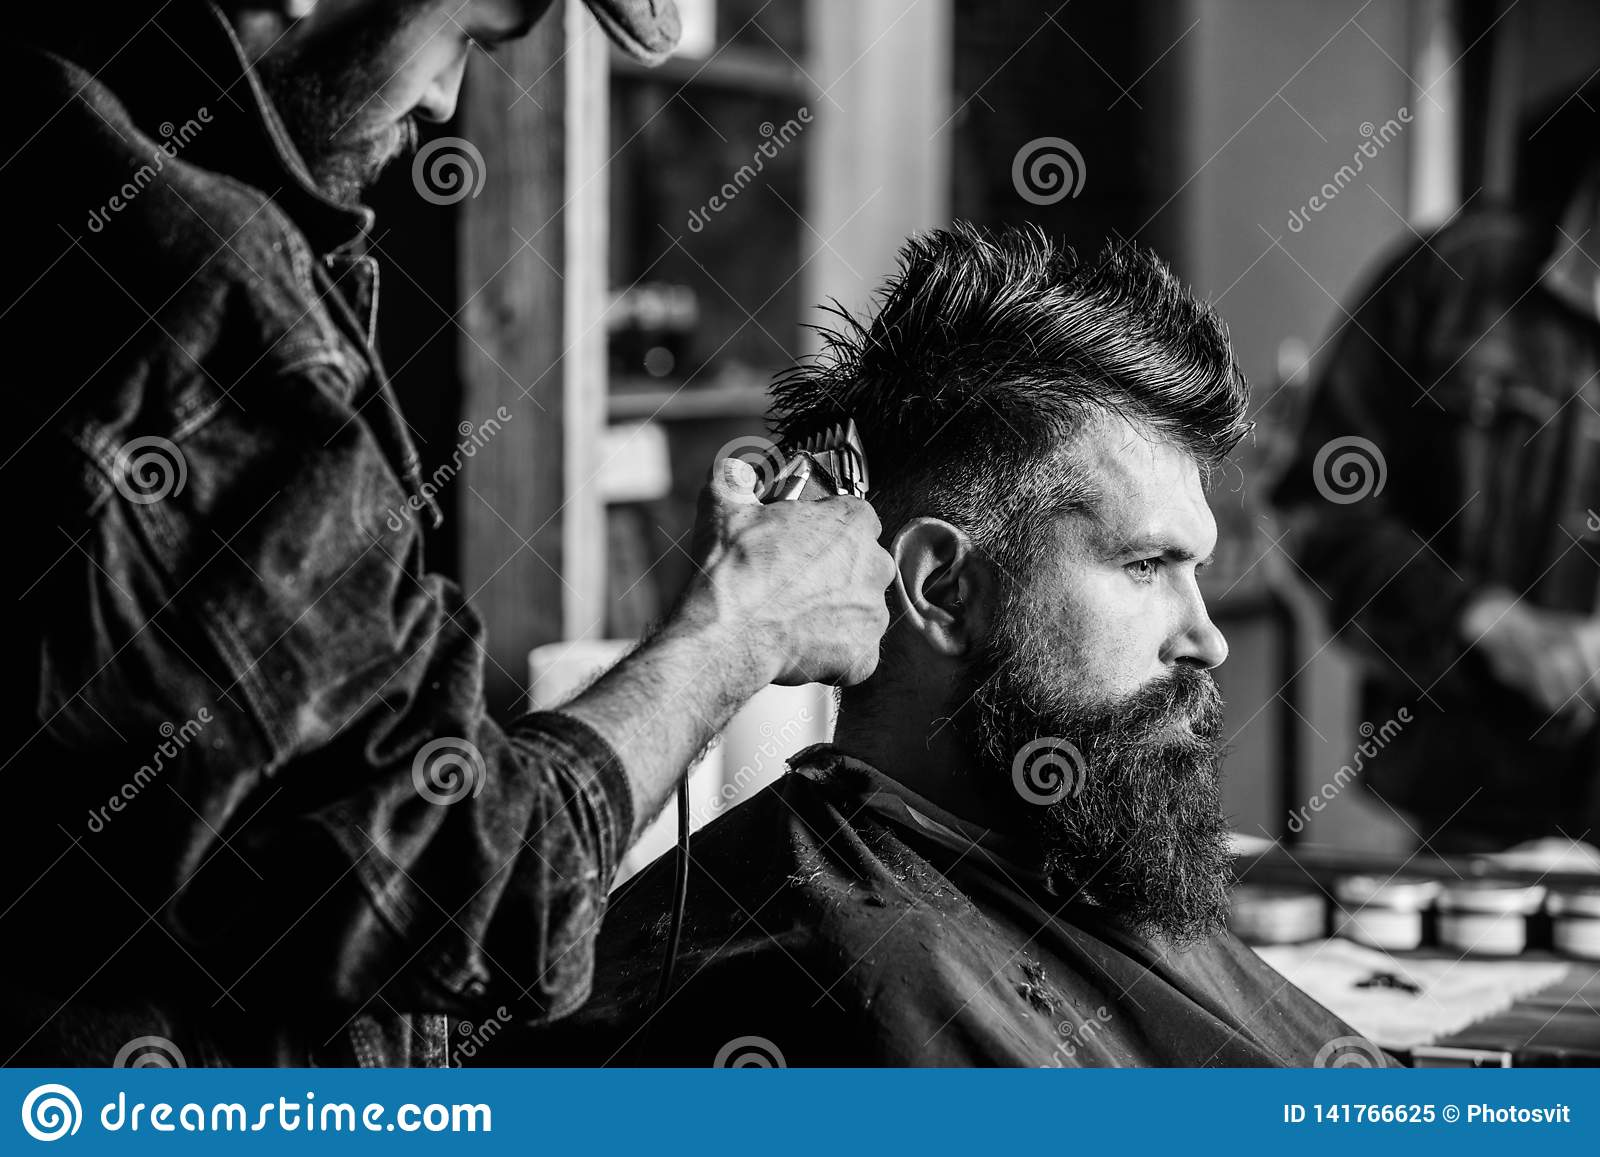 Barber with hair clipper works on hairstyle for bearded man barbershop background. Barber styling hair of brutal bearded